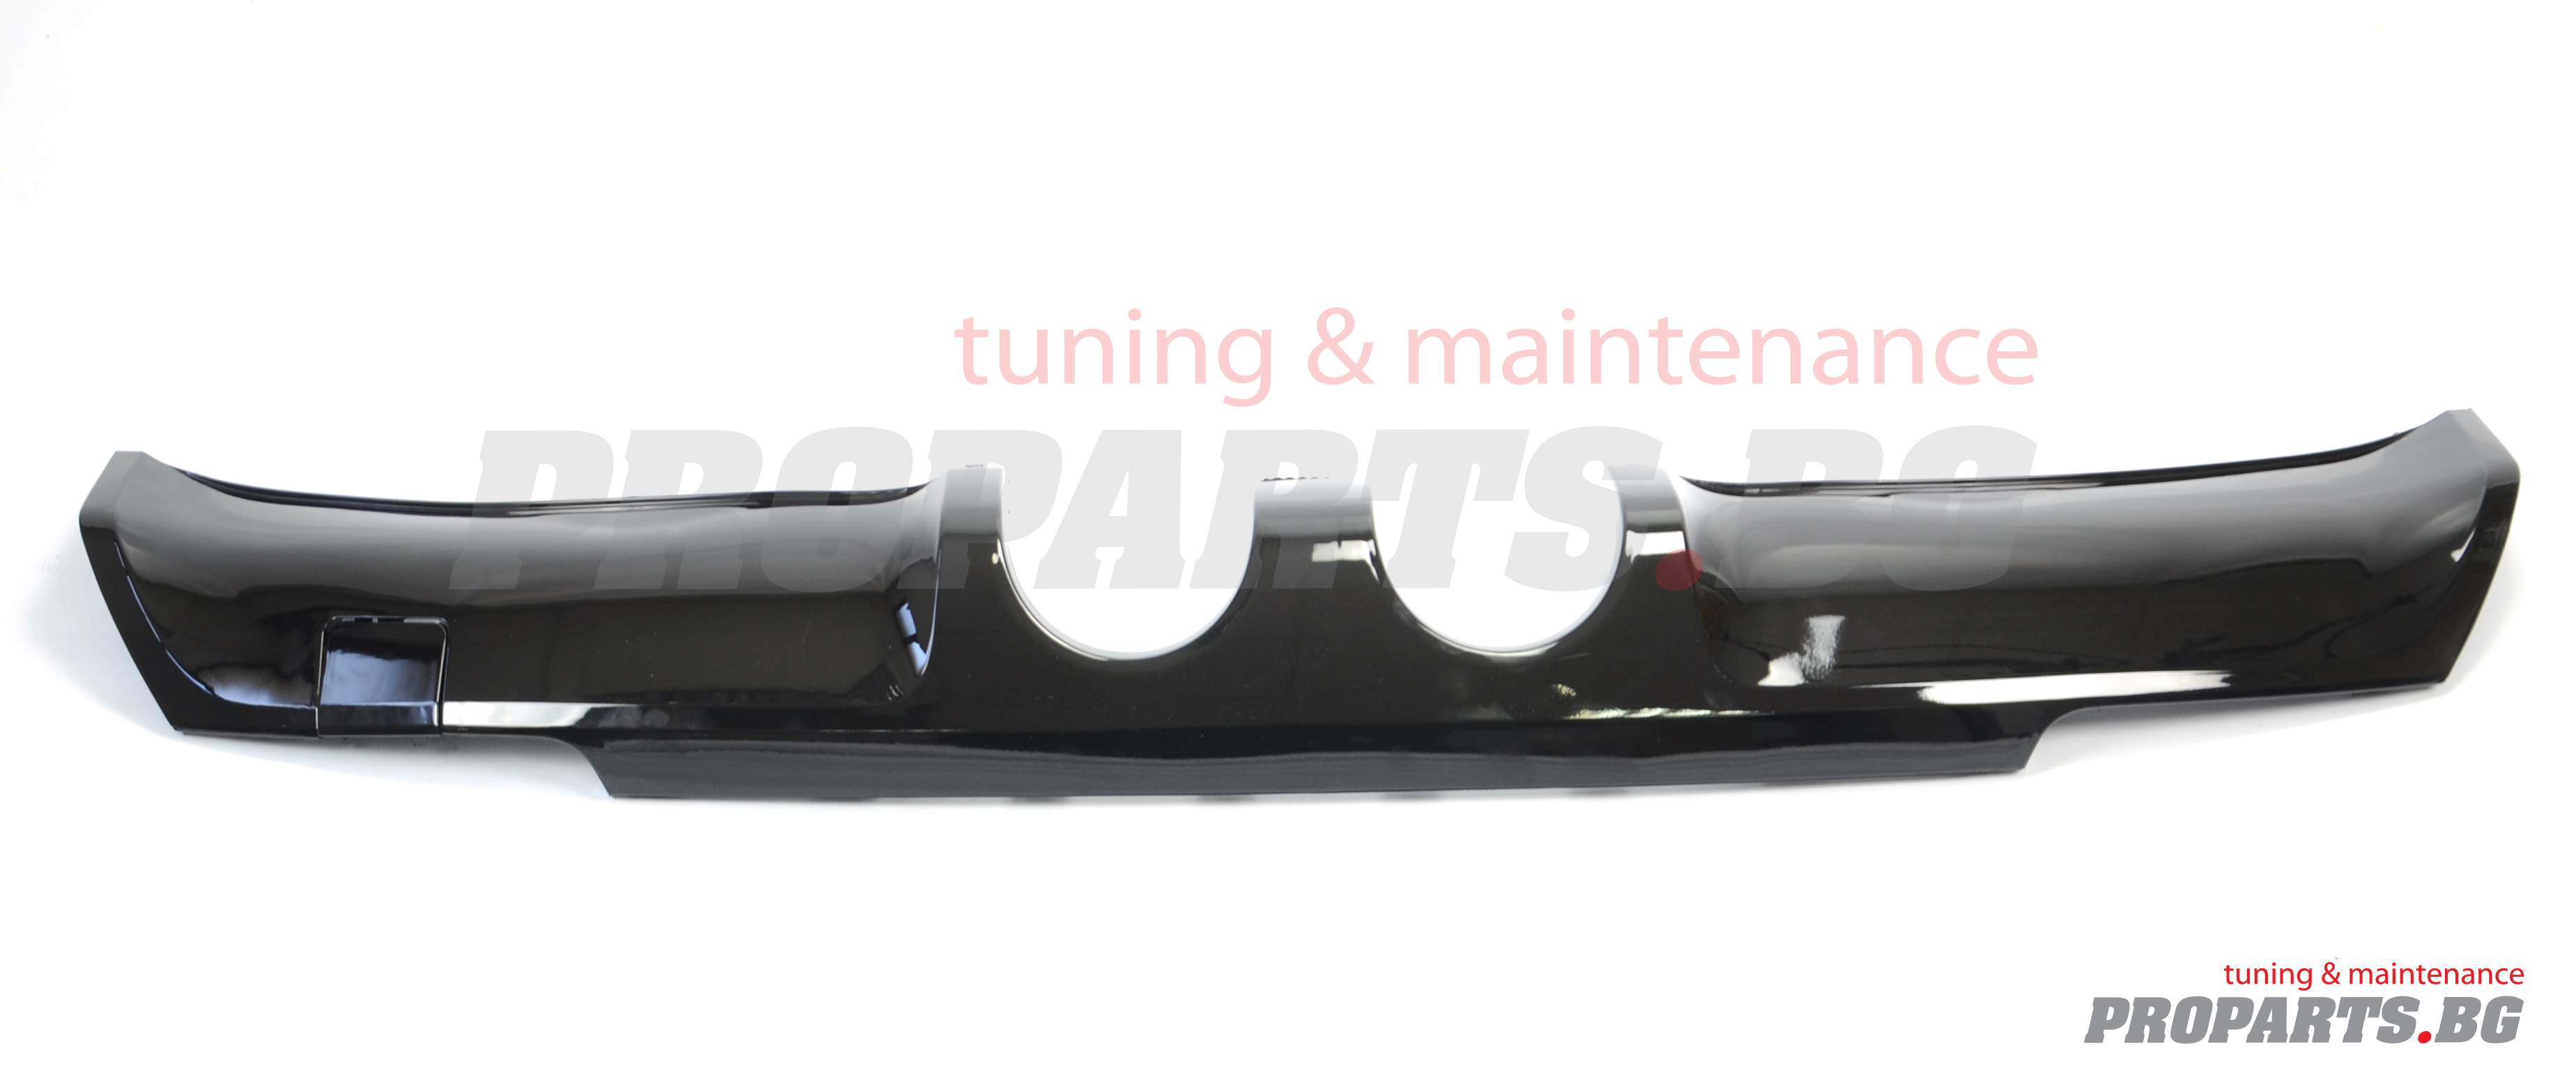 VW GOLF 6 MK6 R-LINE R 20 STYLE PLASTIC BODY KIT FRONT REAR BUMPER ...